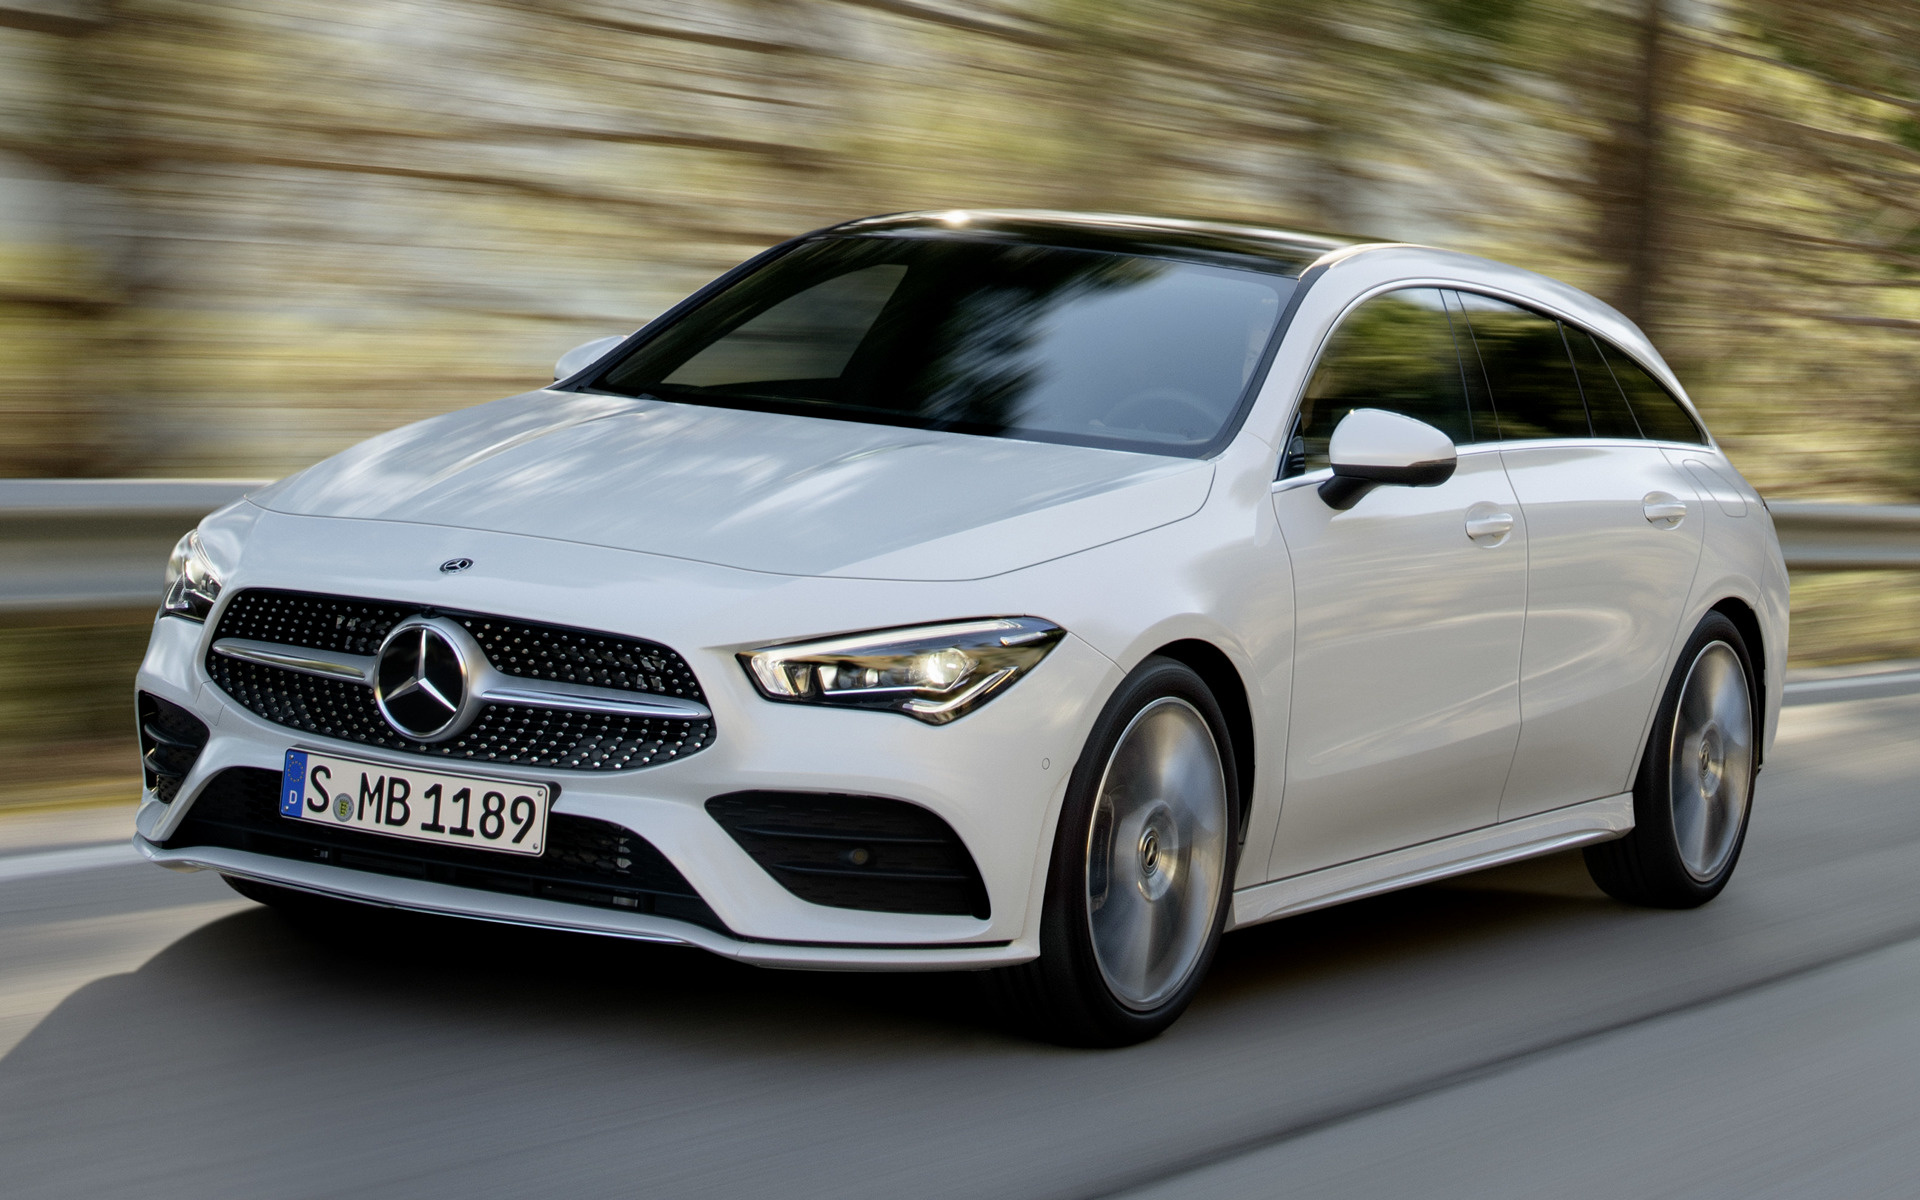 Mercedes Benz Cla >> 2019 Mercedes-Benz CLA-Class Shooting Brake AMG Line - Wallpapers and HD Images | Car Pixel